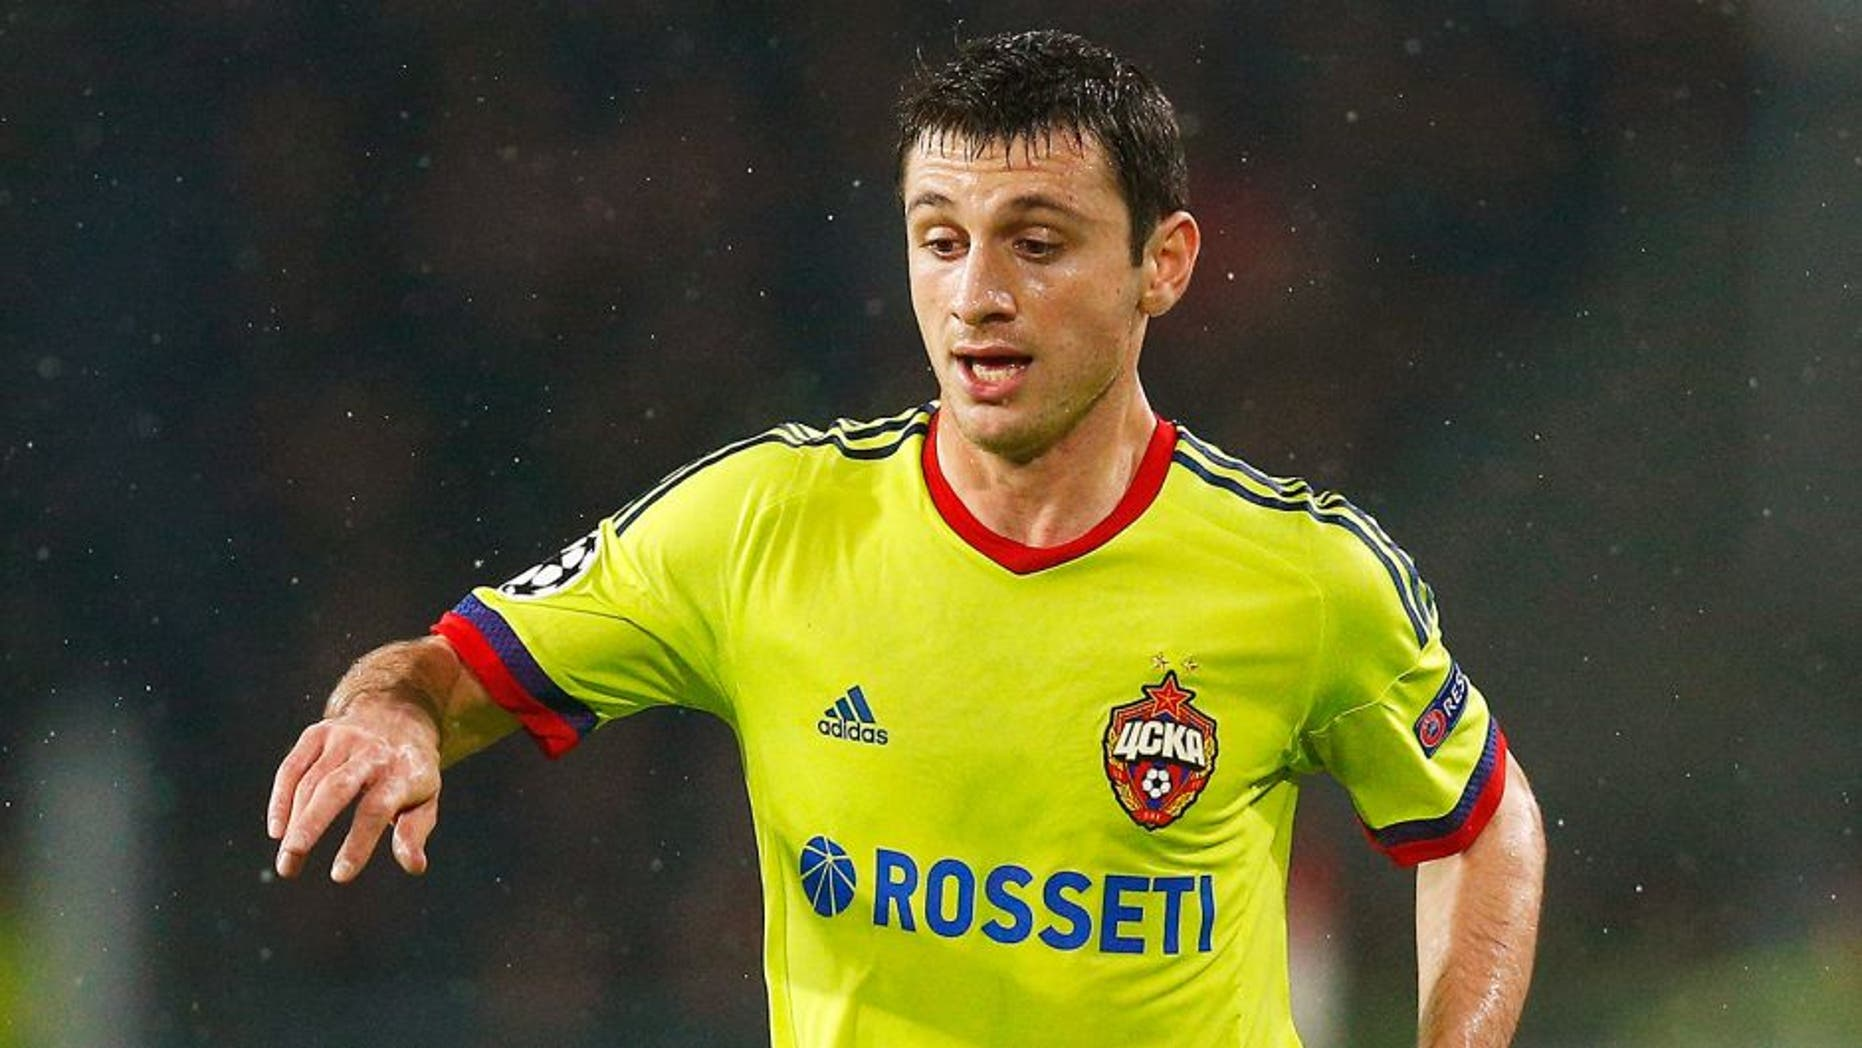 EINDHOVEN, NETHERLANDS - DECEMBER 08: Alan Dzagoev of CSKA in action during the group B UEFA Champions League match between PSV Eindhoven and CSKA Moscow held at Philips Stadium, on December 8, 2015 in Eindhoven, Netherlands. (Photo by Dean Mouhtaropoulos/Getty Images)